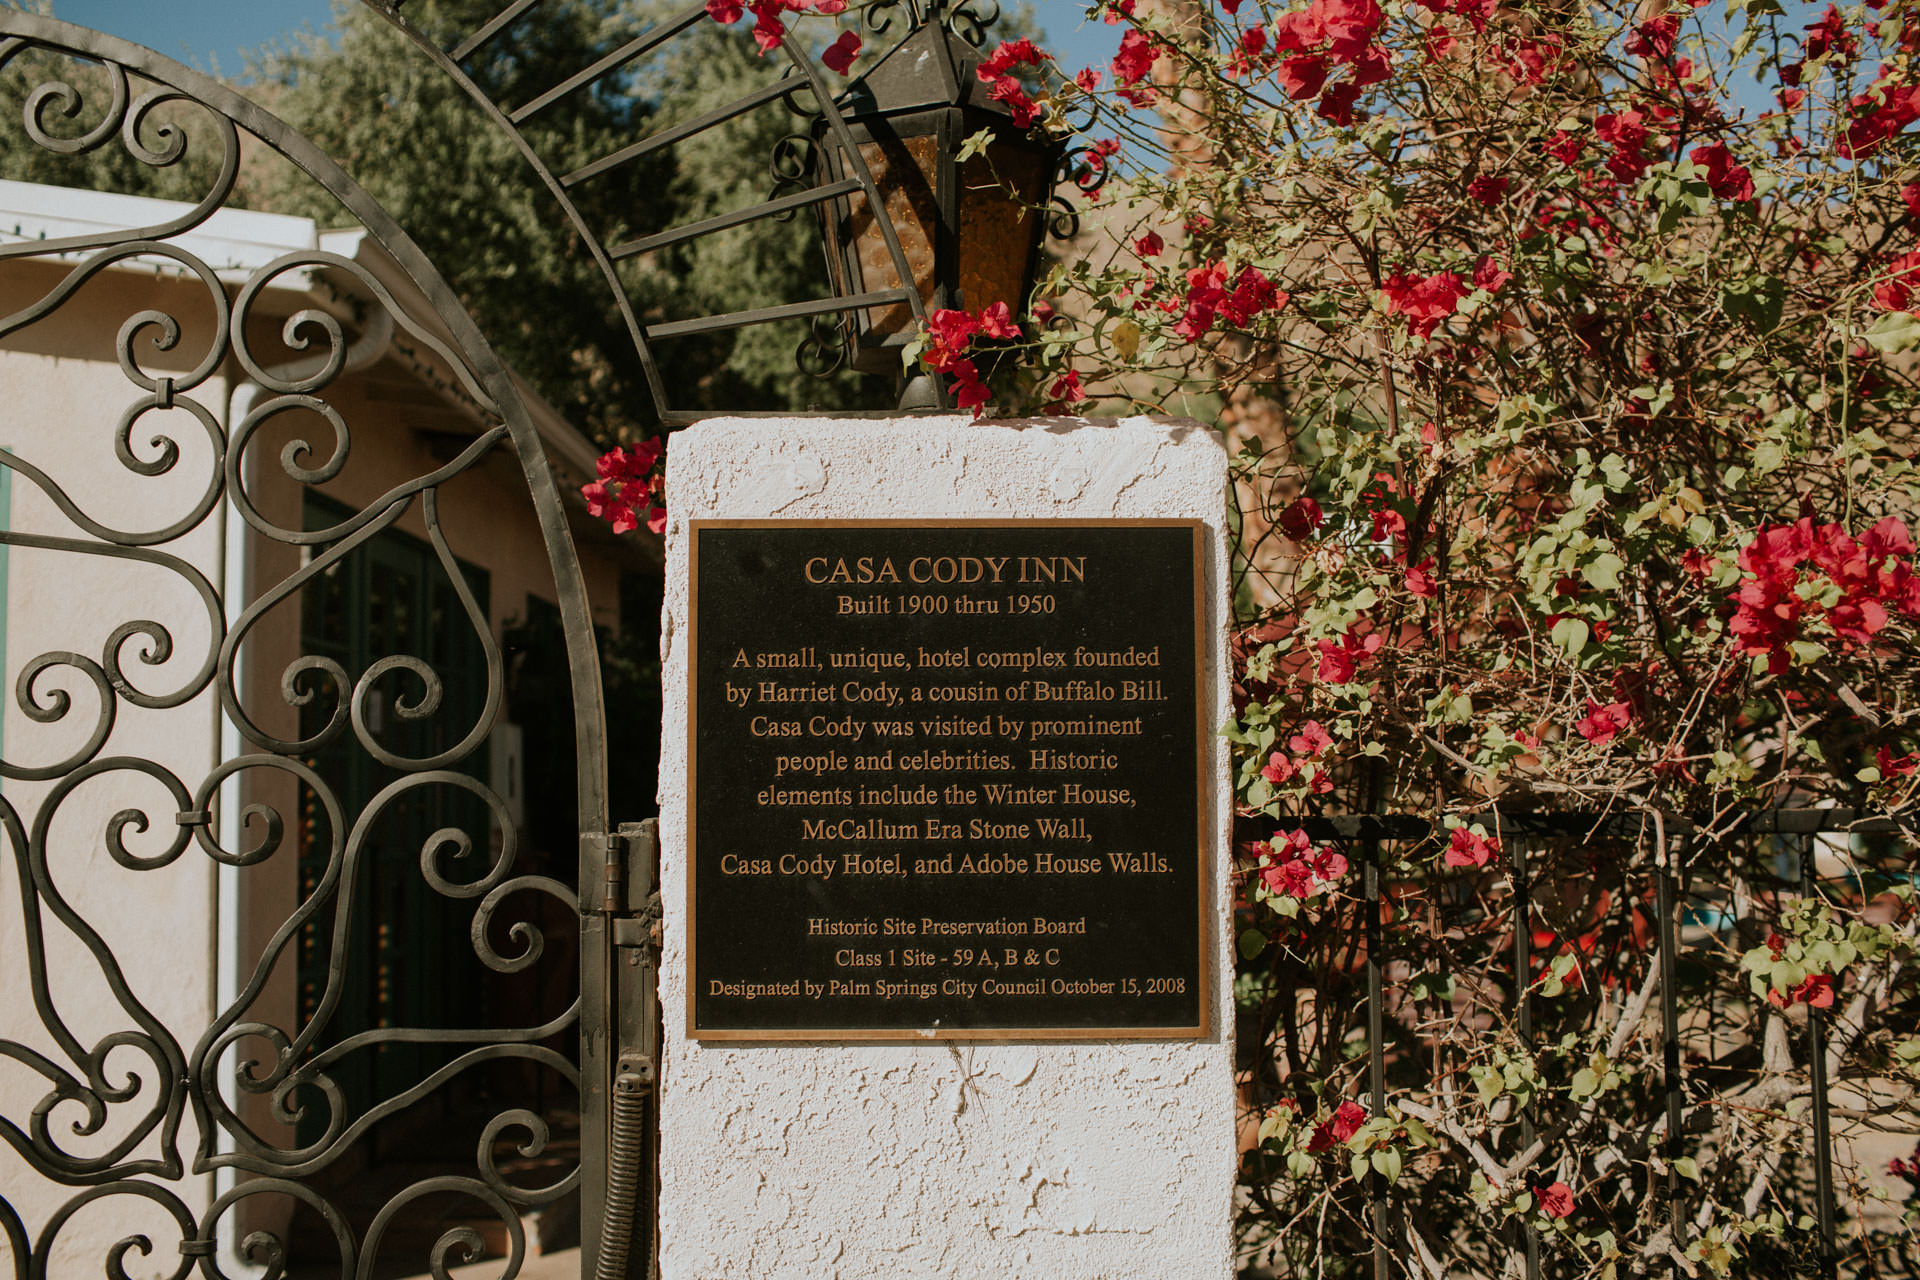 the front entrance of casa cody inn describing it's history and adobe house walls